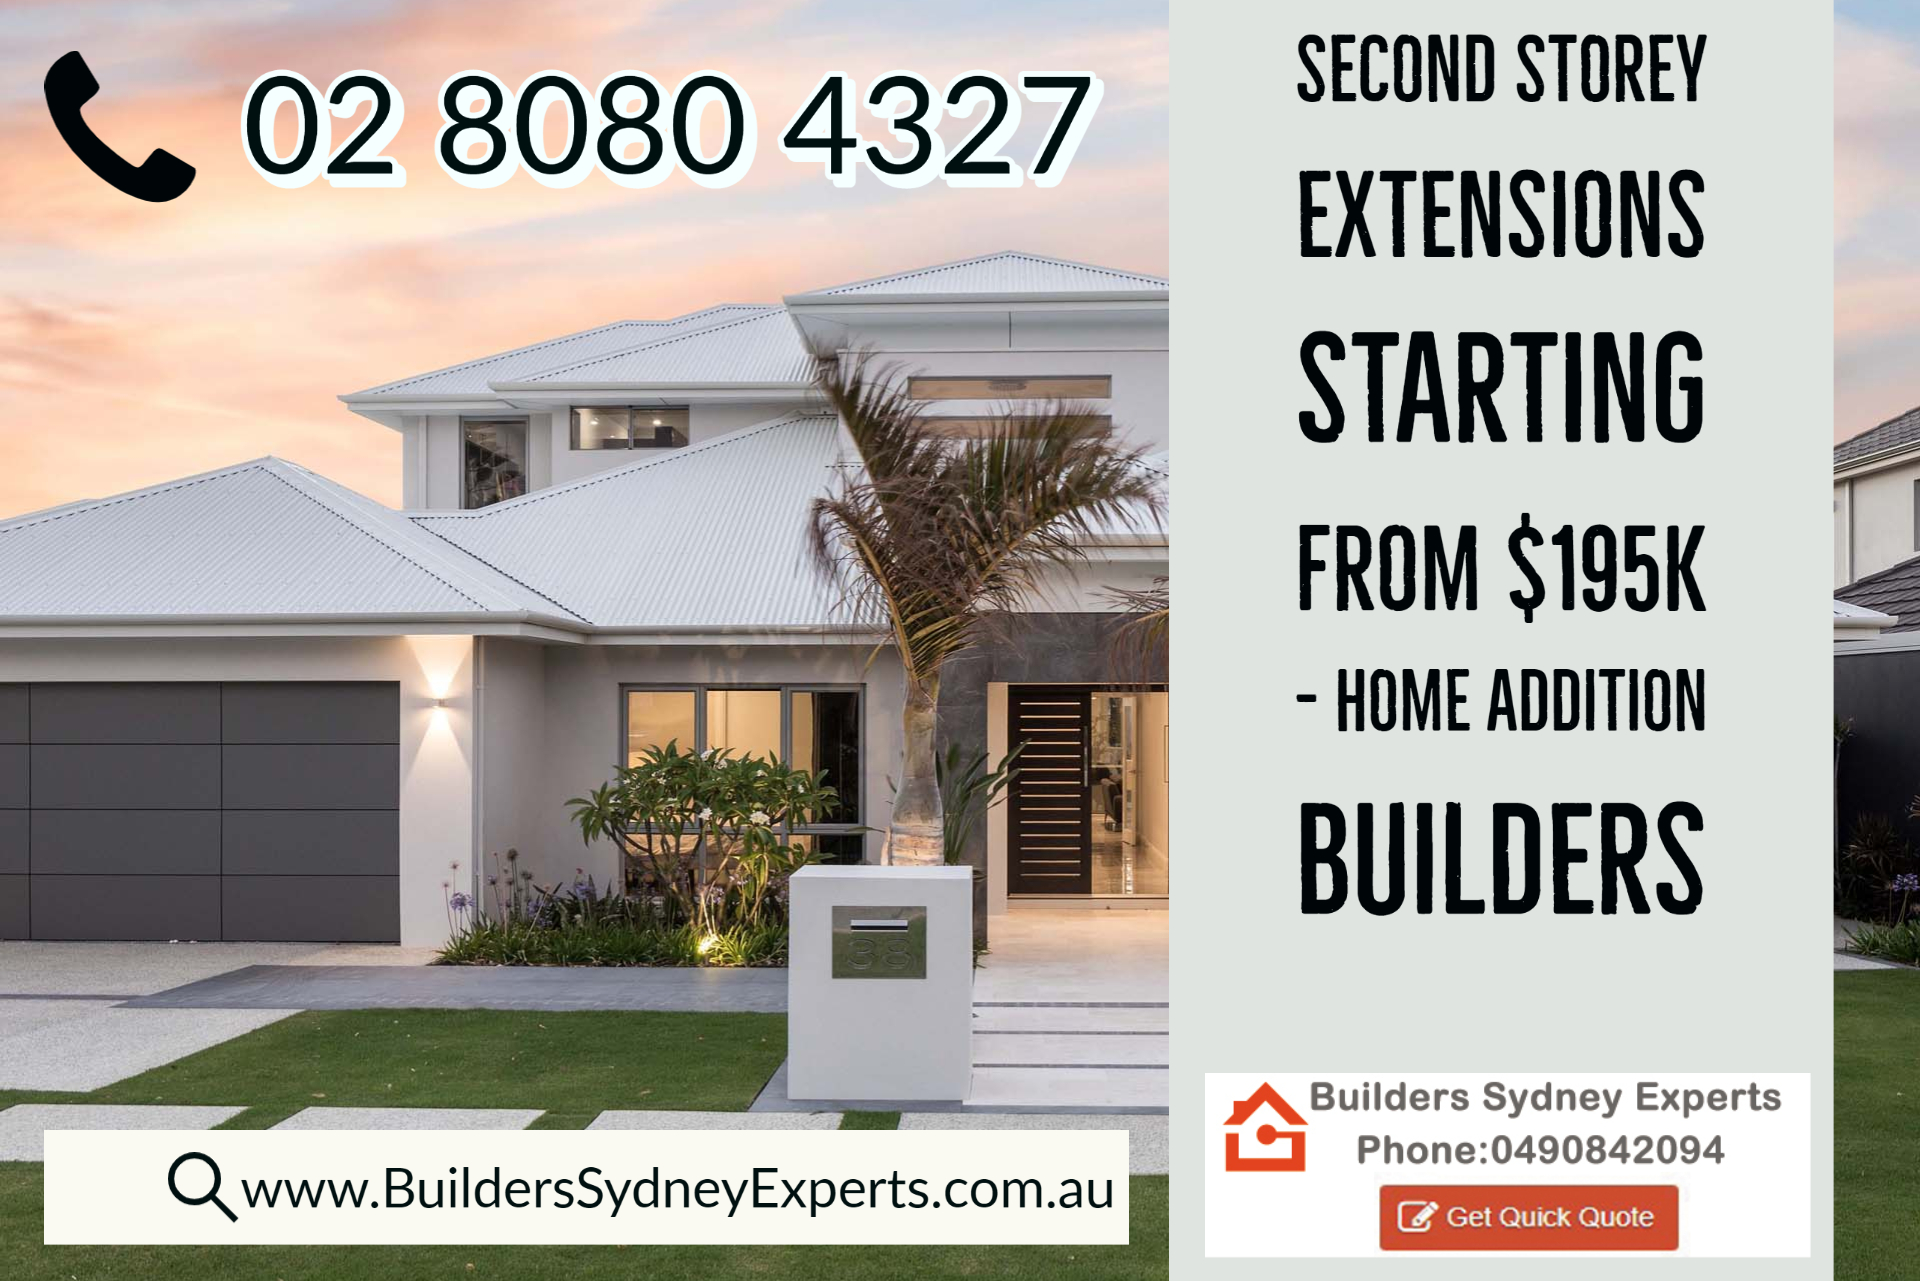 Sydney-second-storey-Cheap-Home-Extensions.